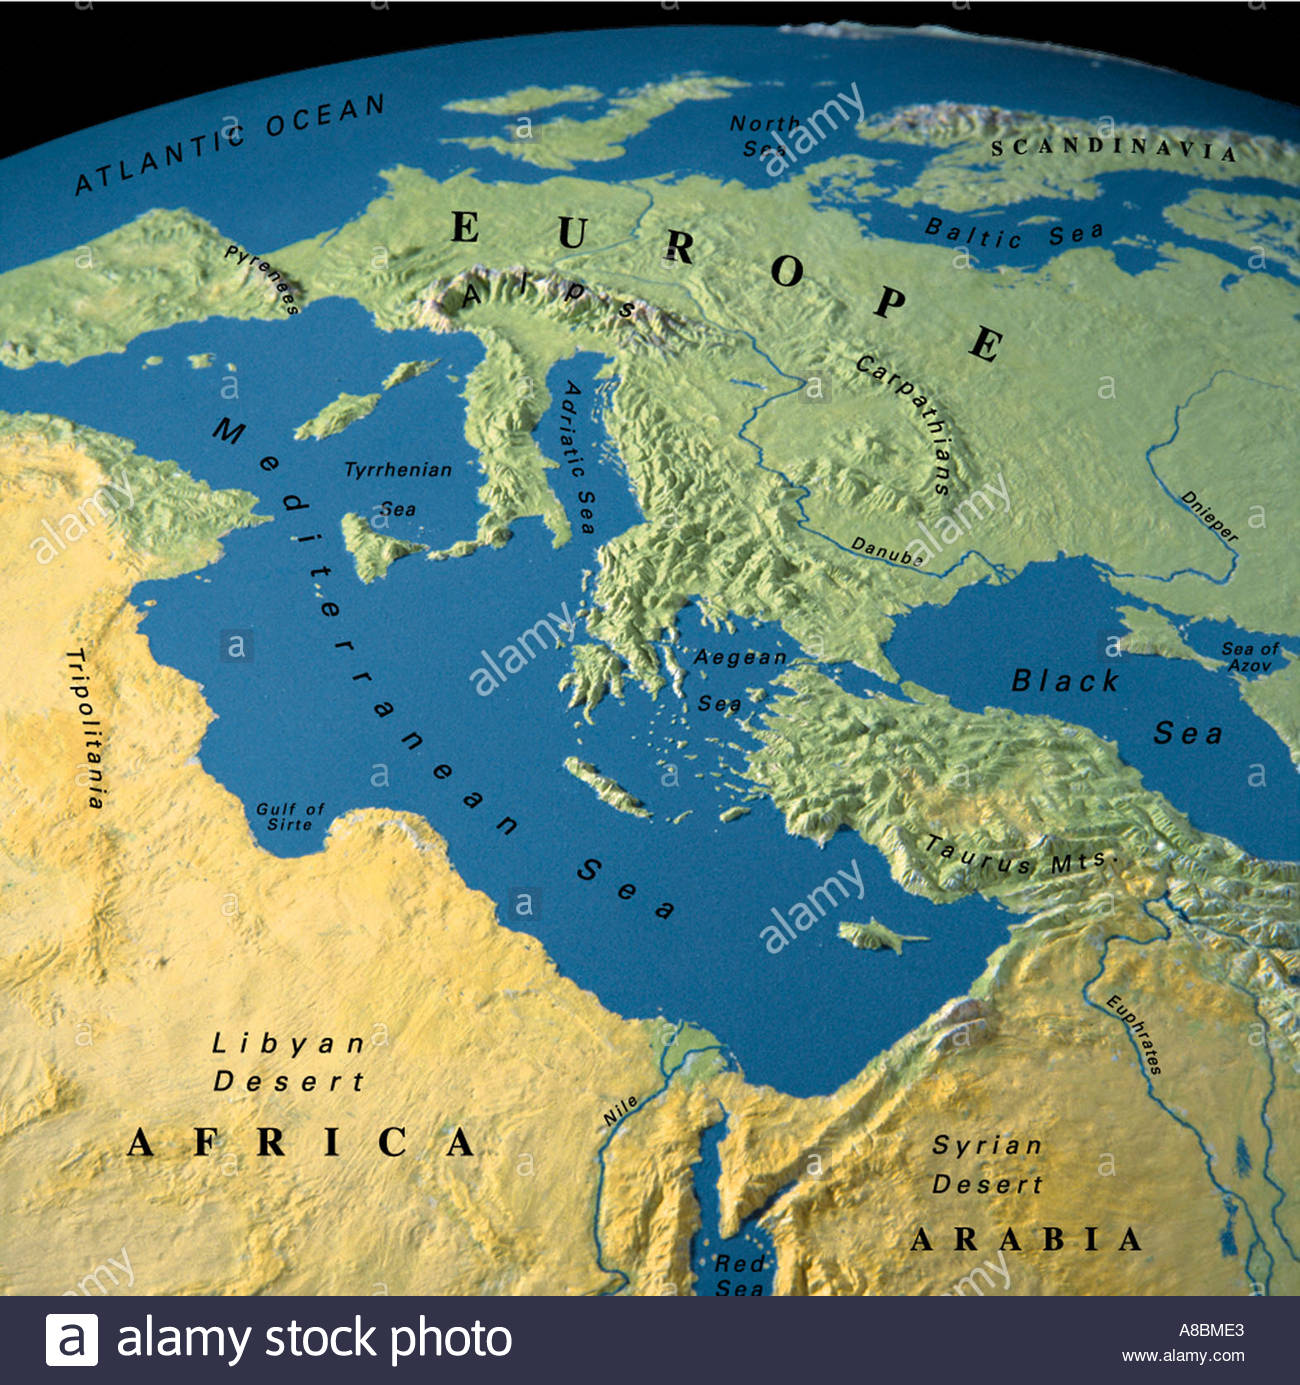 Globe map maps europe africa middle east stock photo 3934434 alamy globe map maps europe africa middle east gumiabroncs Image collections